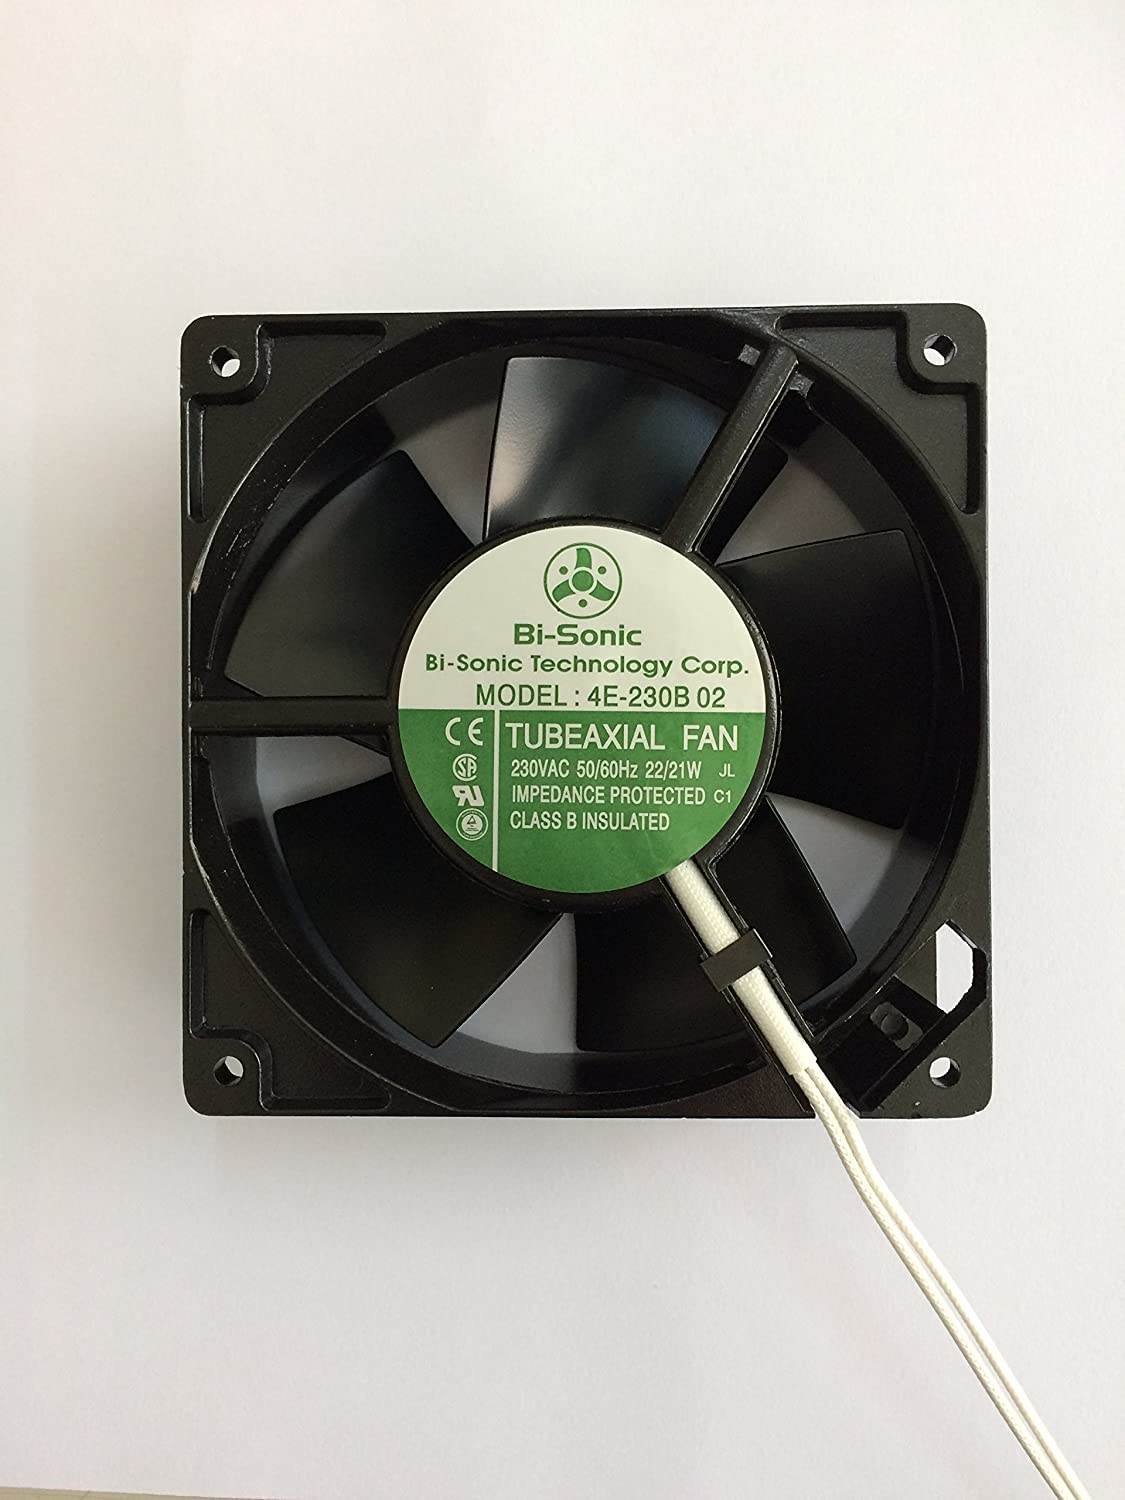 Uebest Ac Axial Fan 12038 All Metal High Wind 230vac Temperature Control Air Pressure Cooling Fan110v 120mm By 38mm Speed Electronics